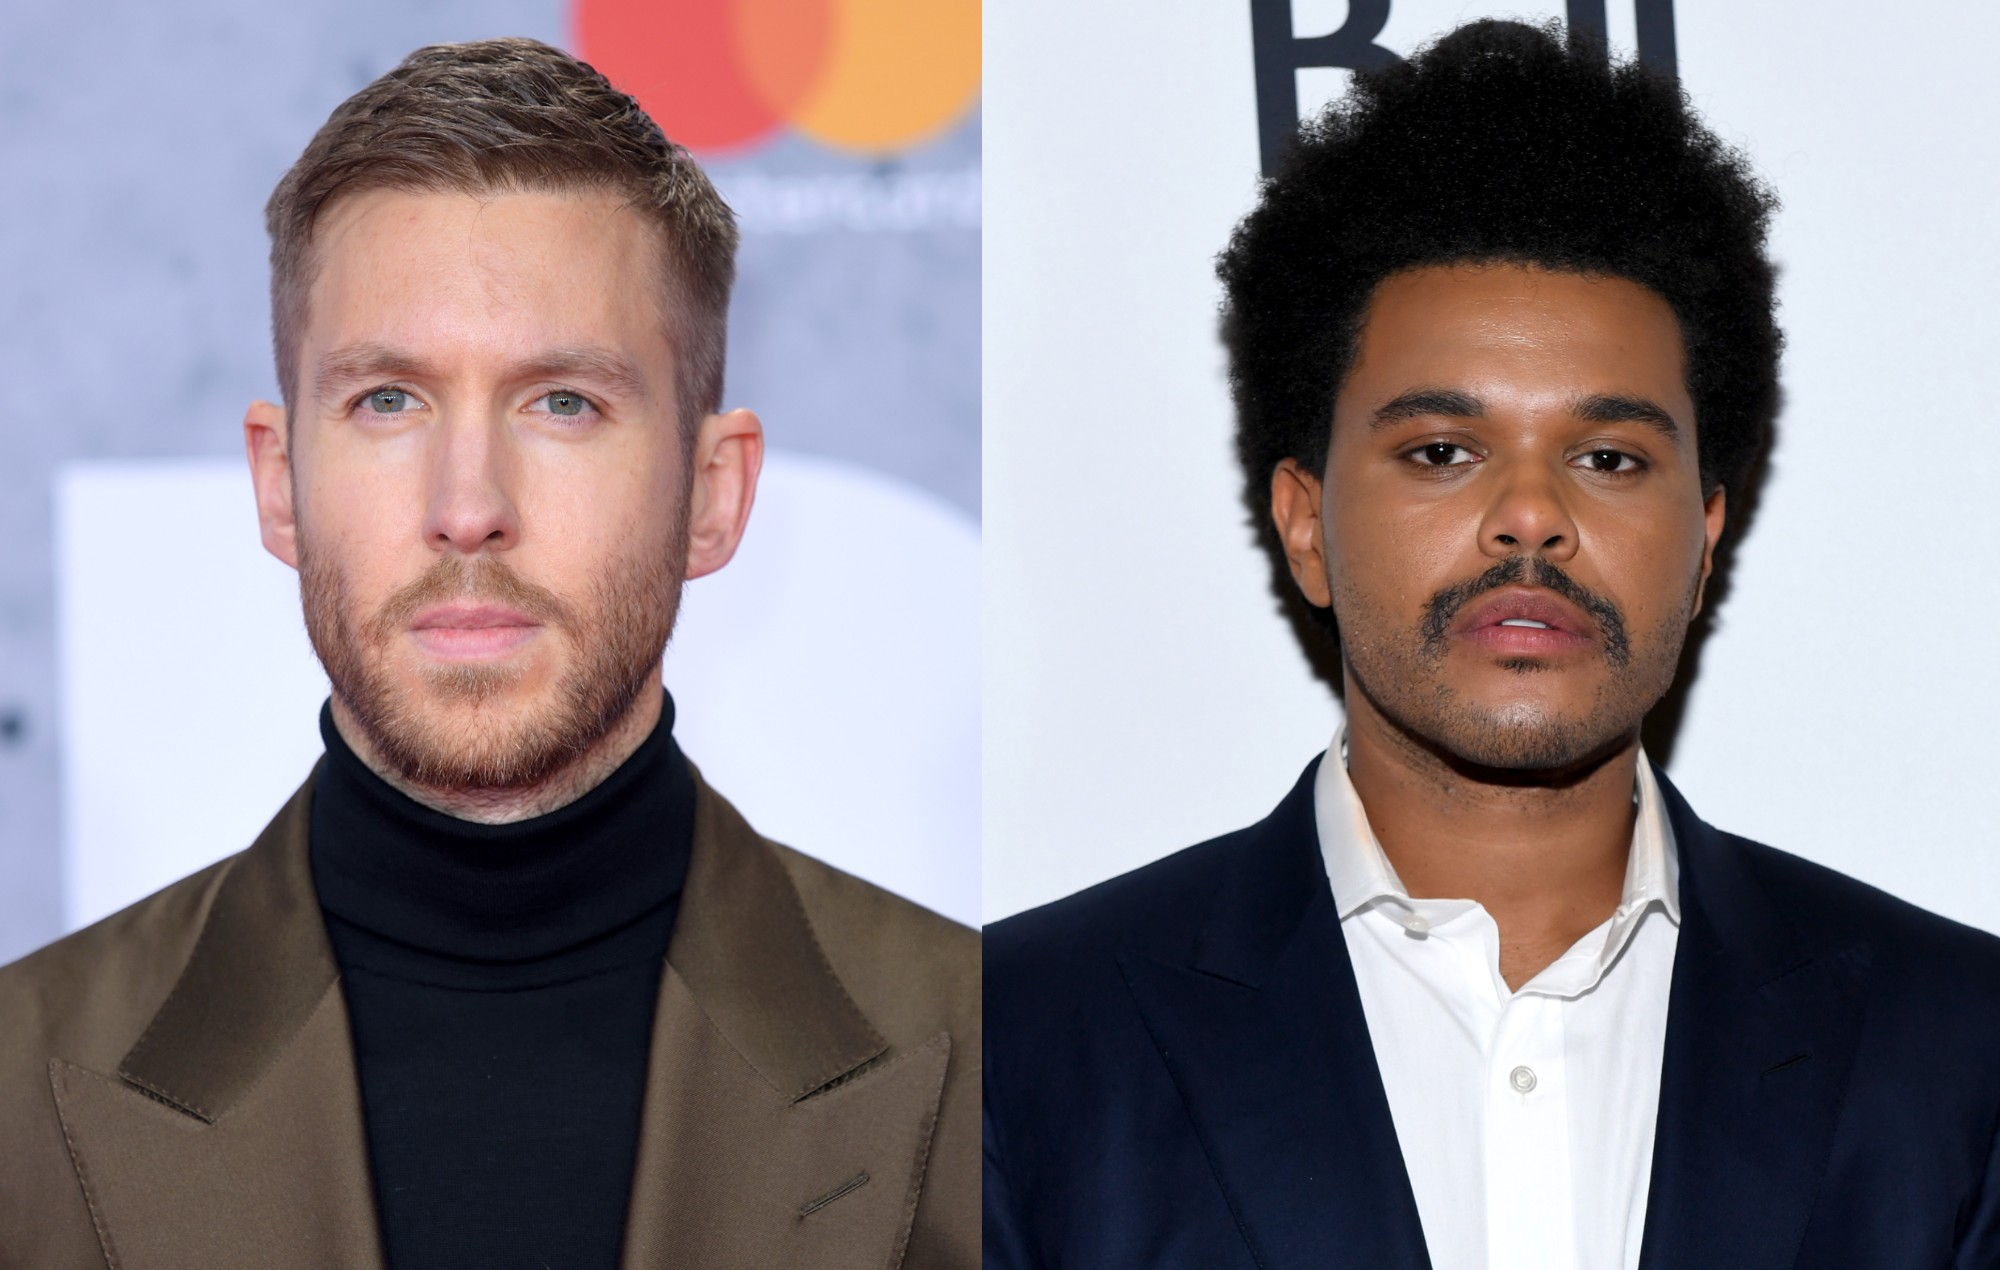 Calvin x The Weeknd 'Over Now'